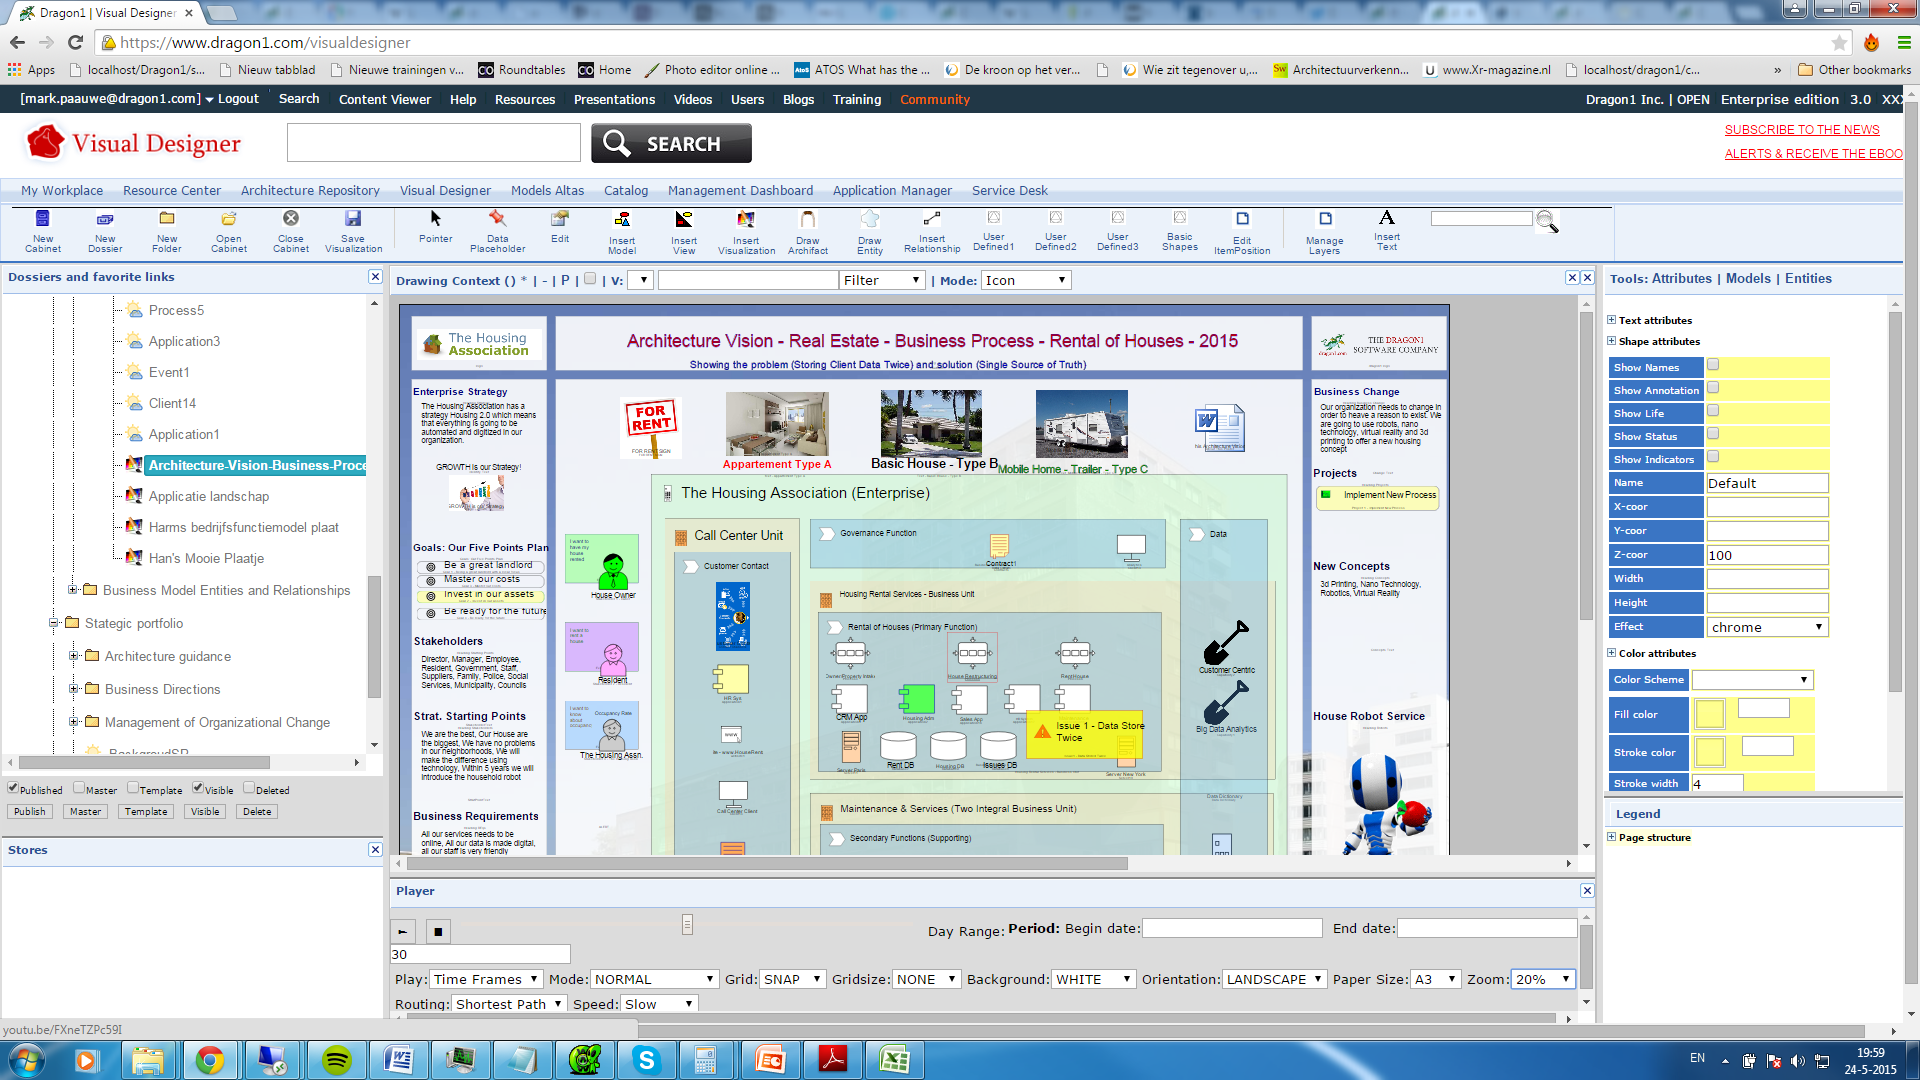 Enterprise Architecture Tool - Dragon1